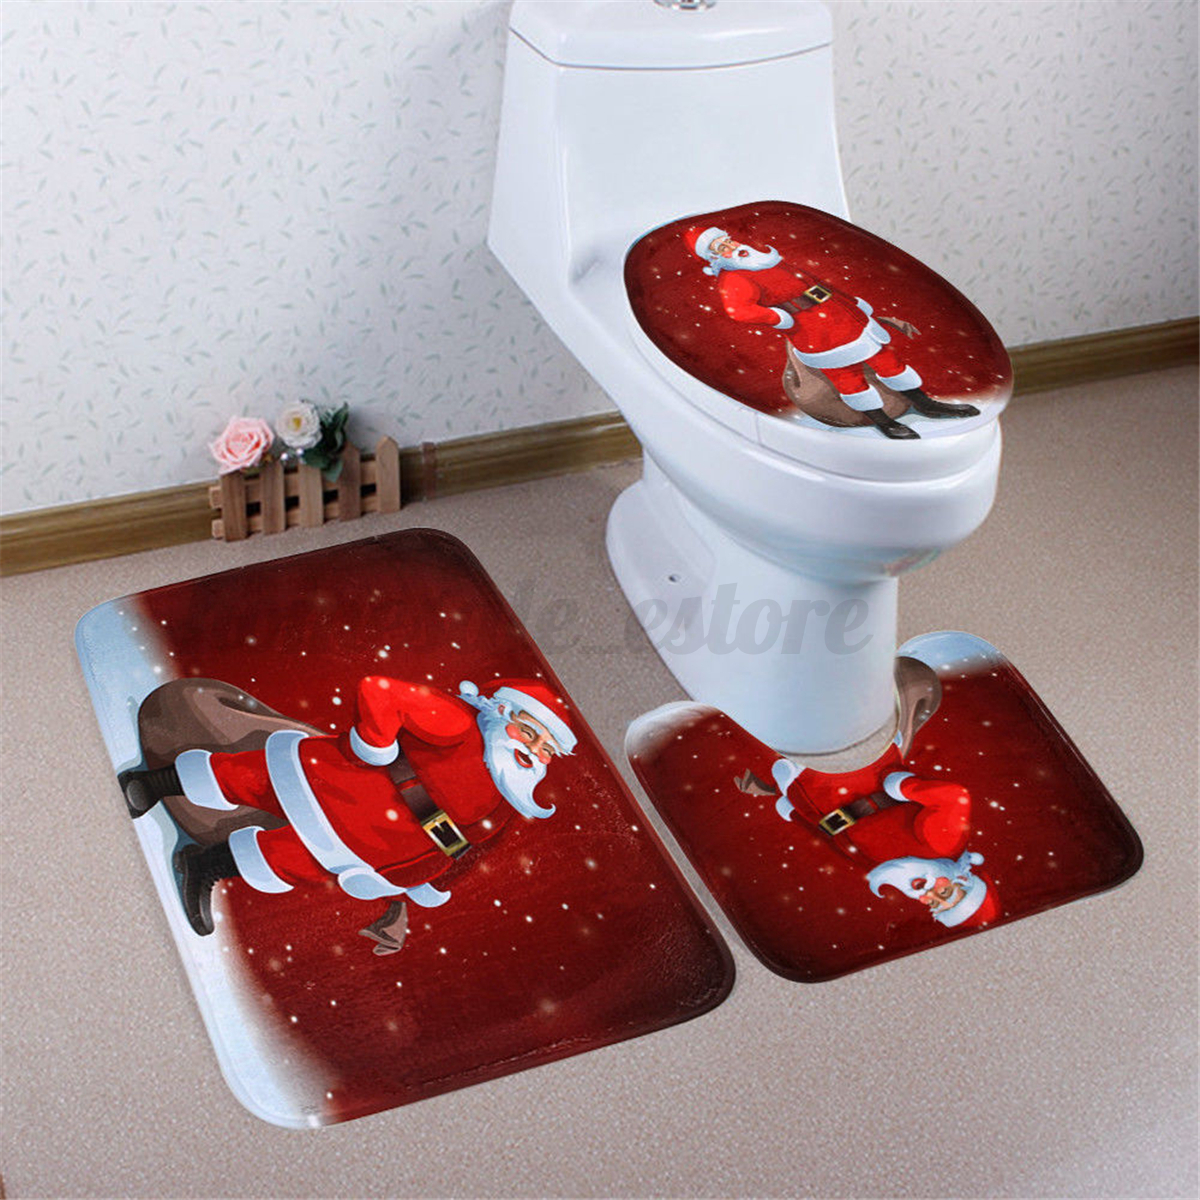 3Pcs Set Christmas Snowman Santa Toilet Seat Cover Rug Bathroom Mat Xmas Decor